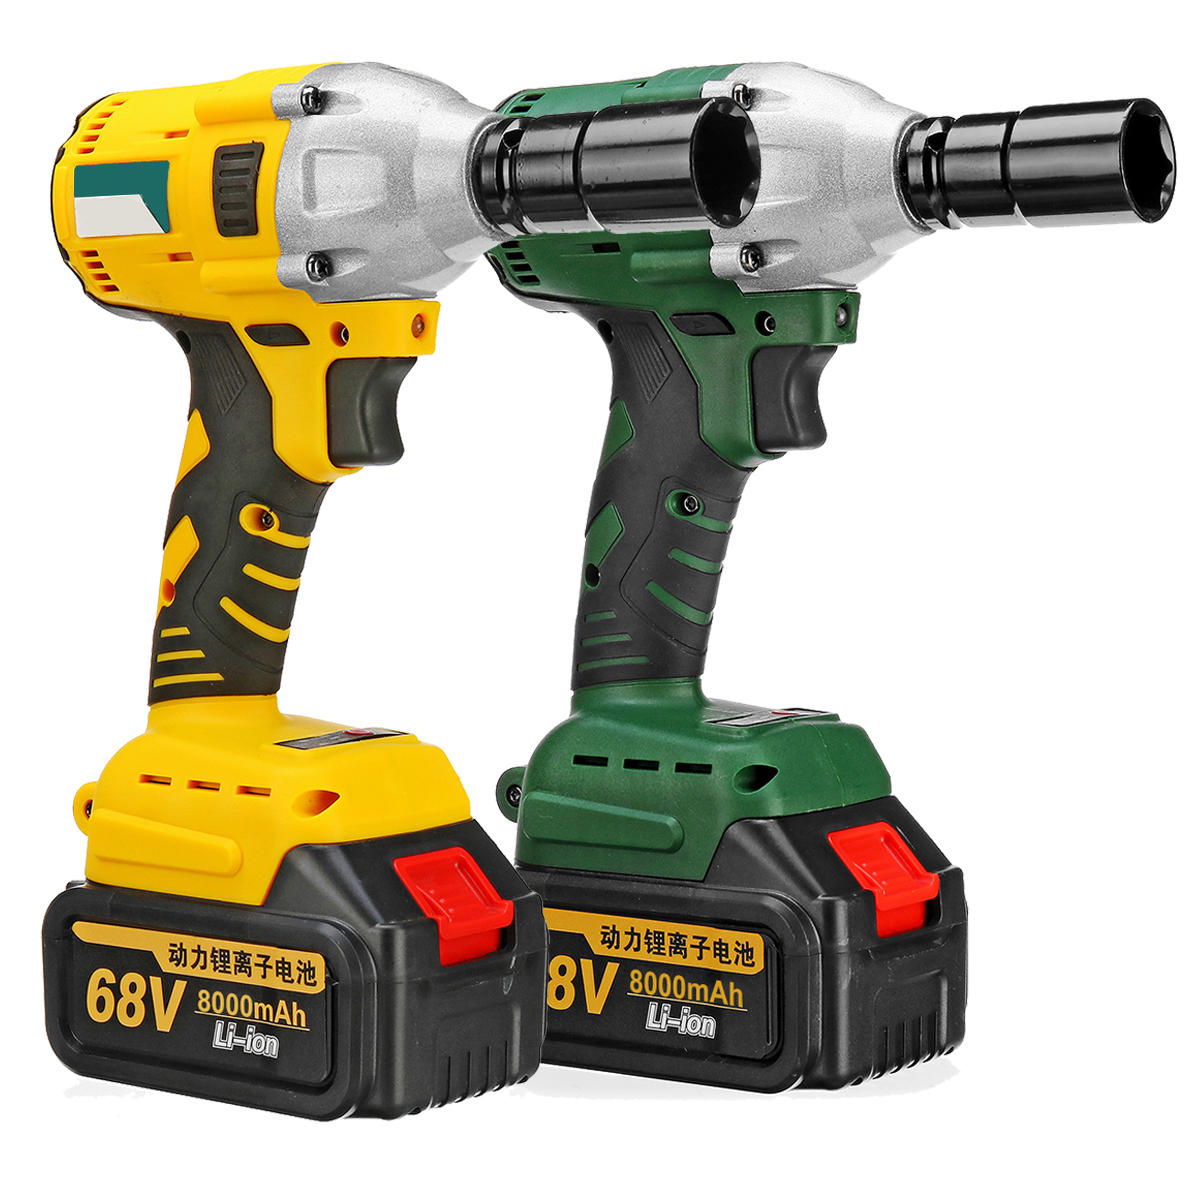 68V 8000mAh 460N.m Electric Cordless Impact Wrench Brushless Driver Tool w/ 2pcs Li-ion Batteries - Yellow